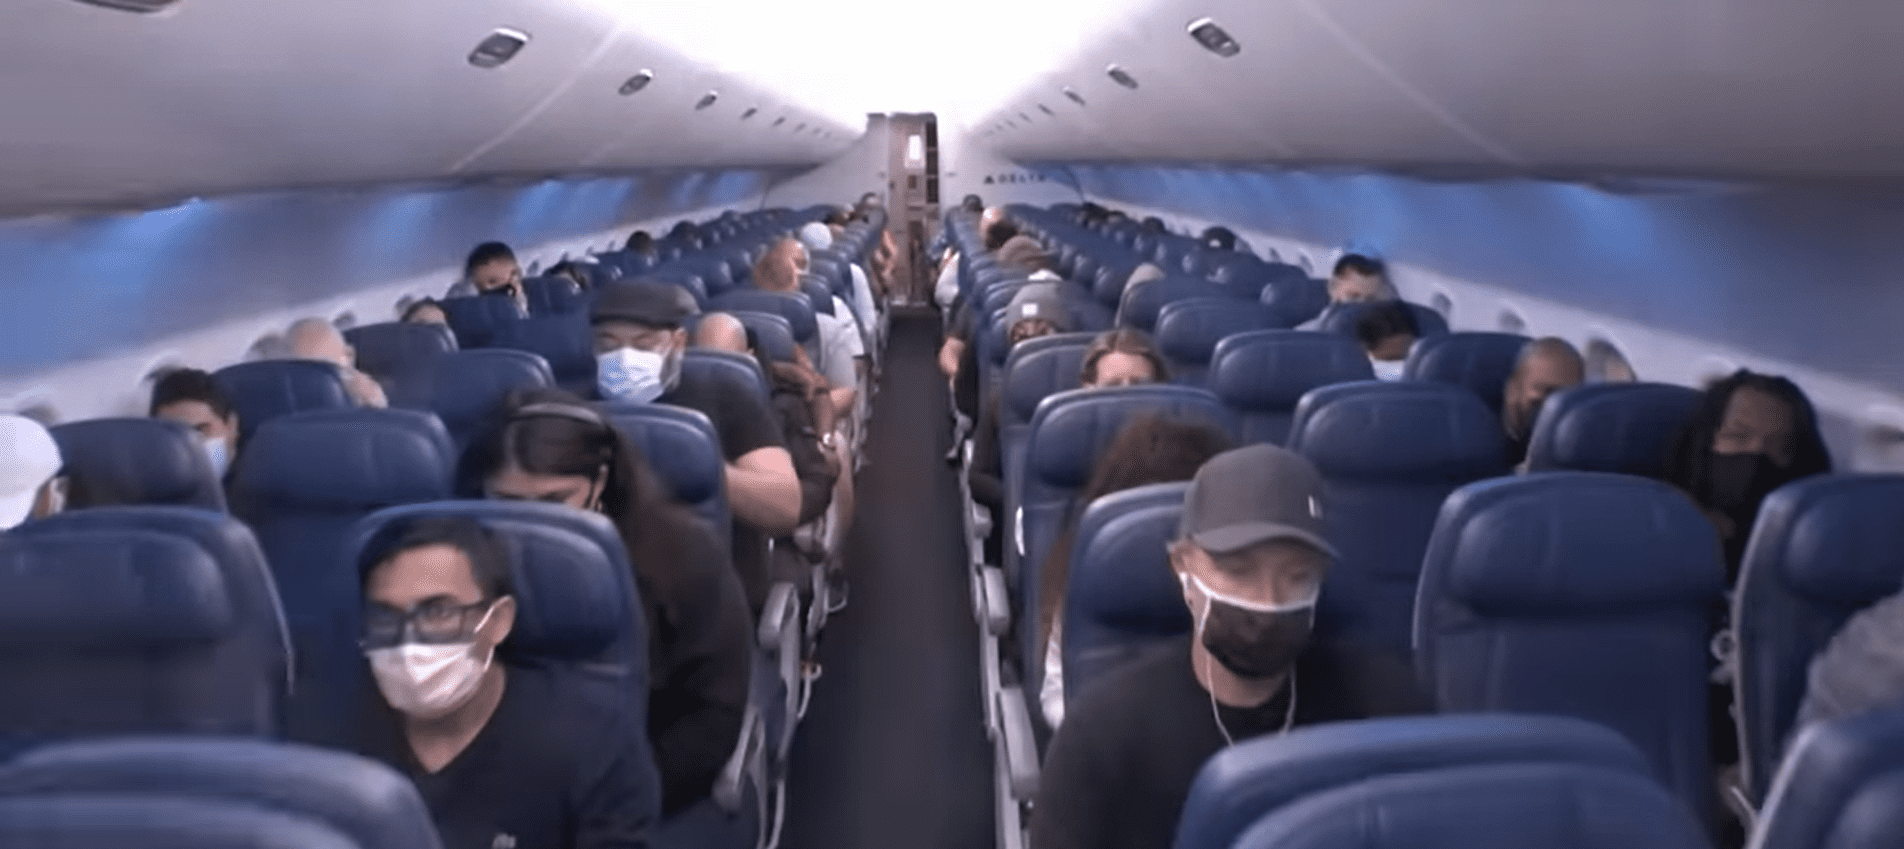 Passengers sitting on an airplane.   Source: youtube.com/Inside Edition